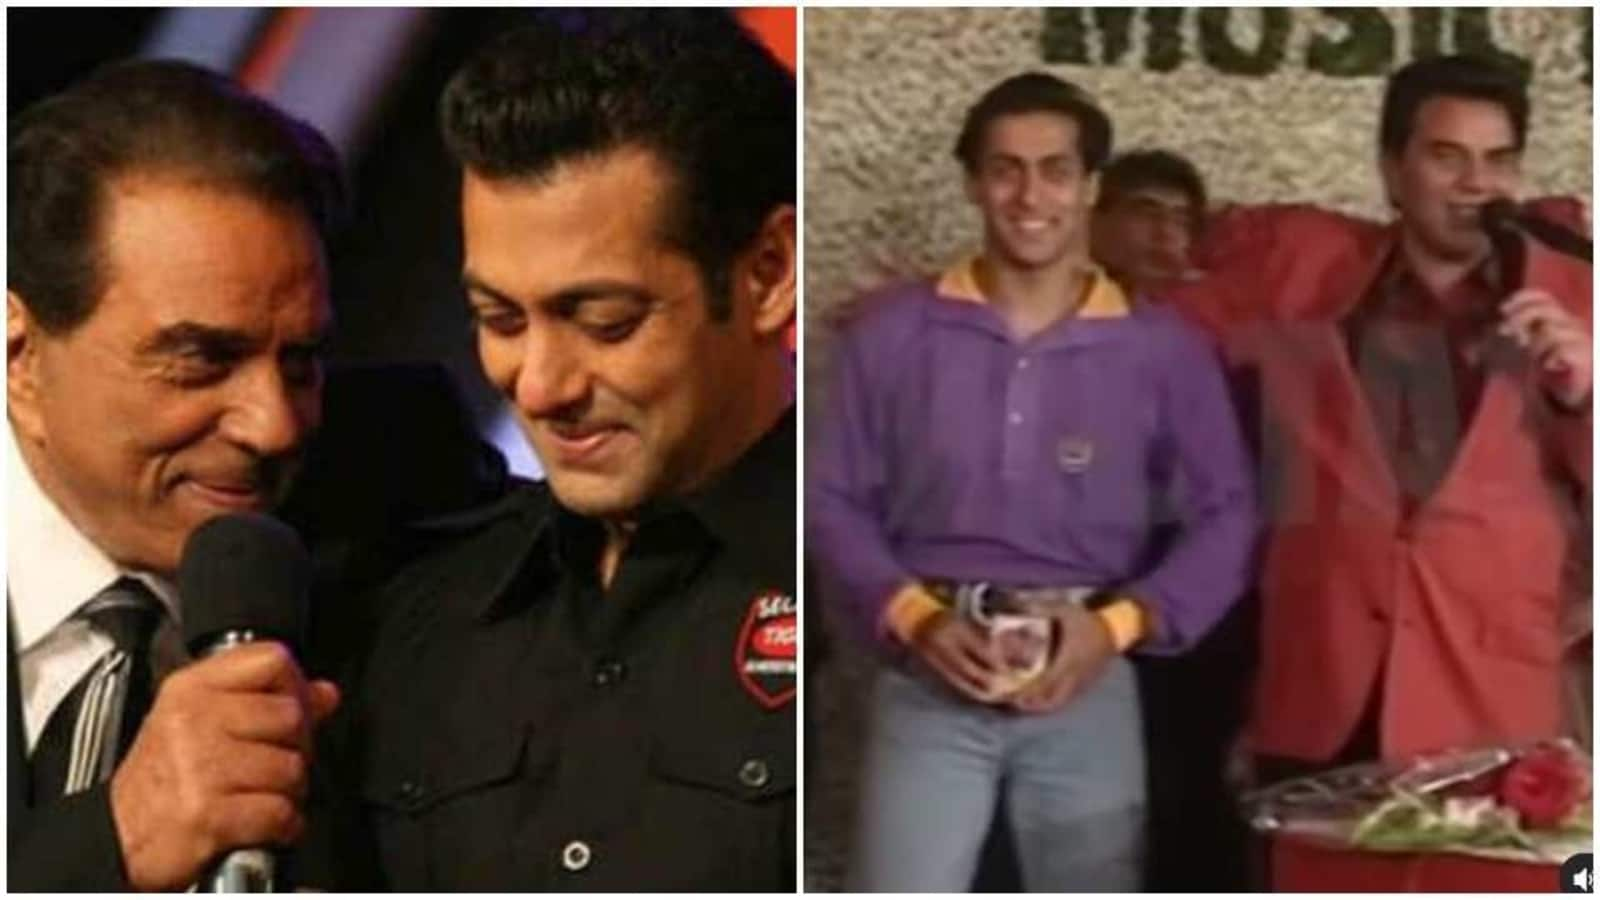 When Dharmendra called Salman Khan 'Suleiman' on stage, apologised with a hug. Watch - Hindustan Times